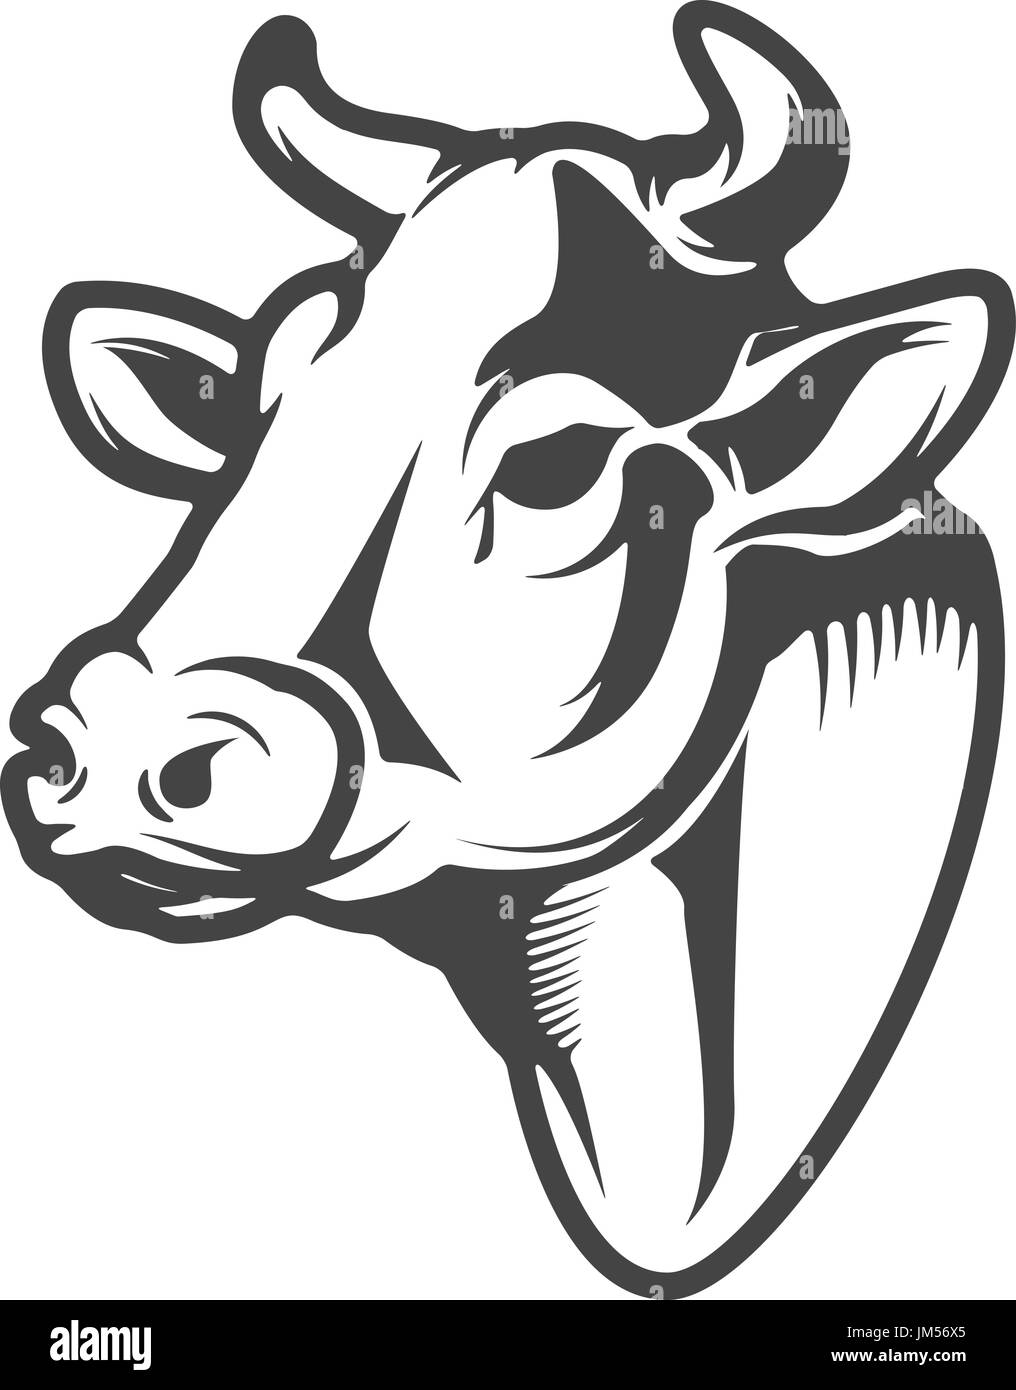 cow head icon isolated on white background design